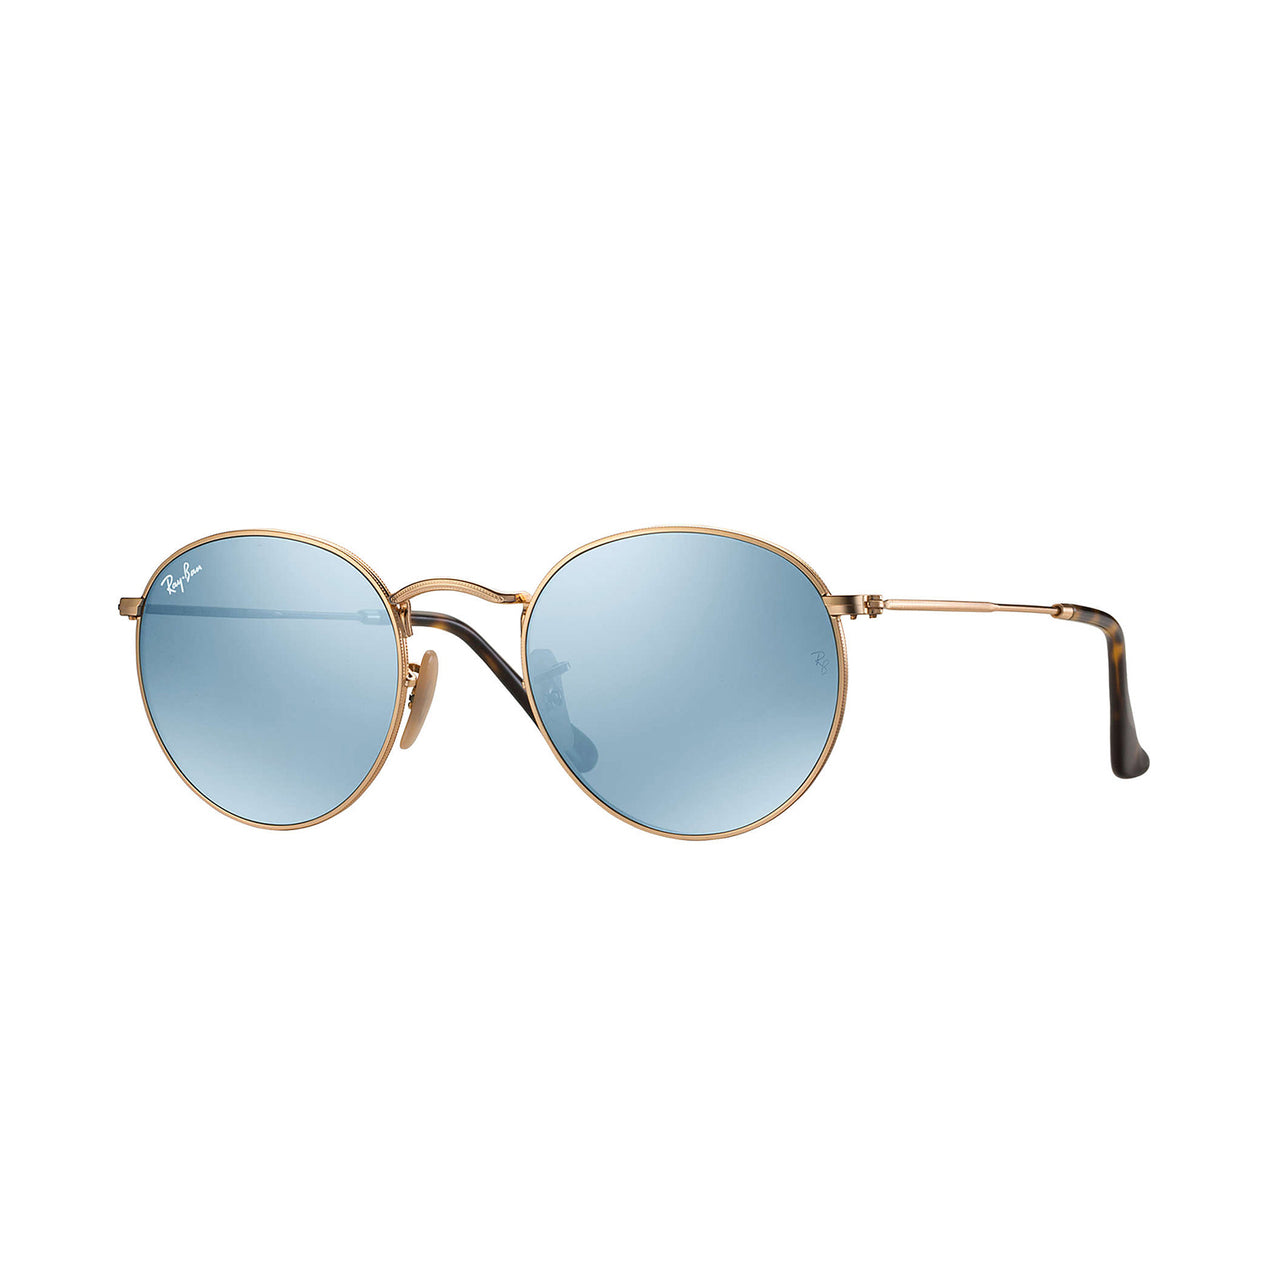 Ray Ban Round Flat Lenses - Gold Frame - Silver Flash Lens ...